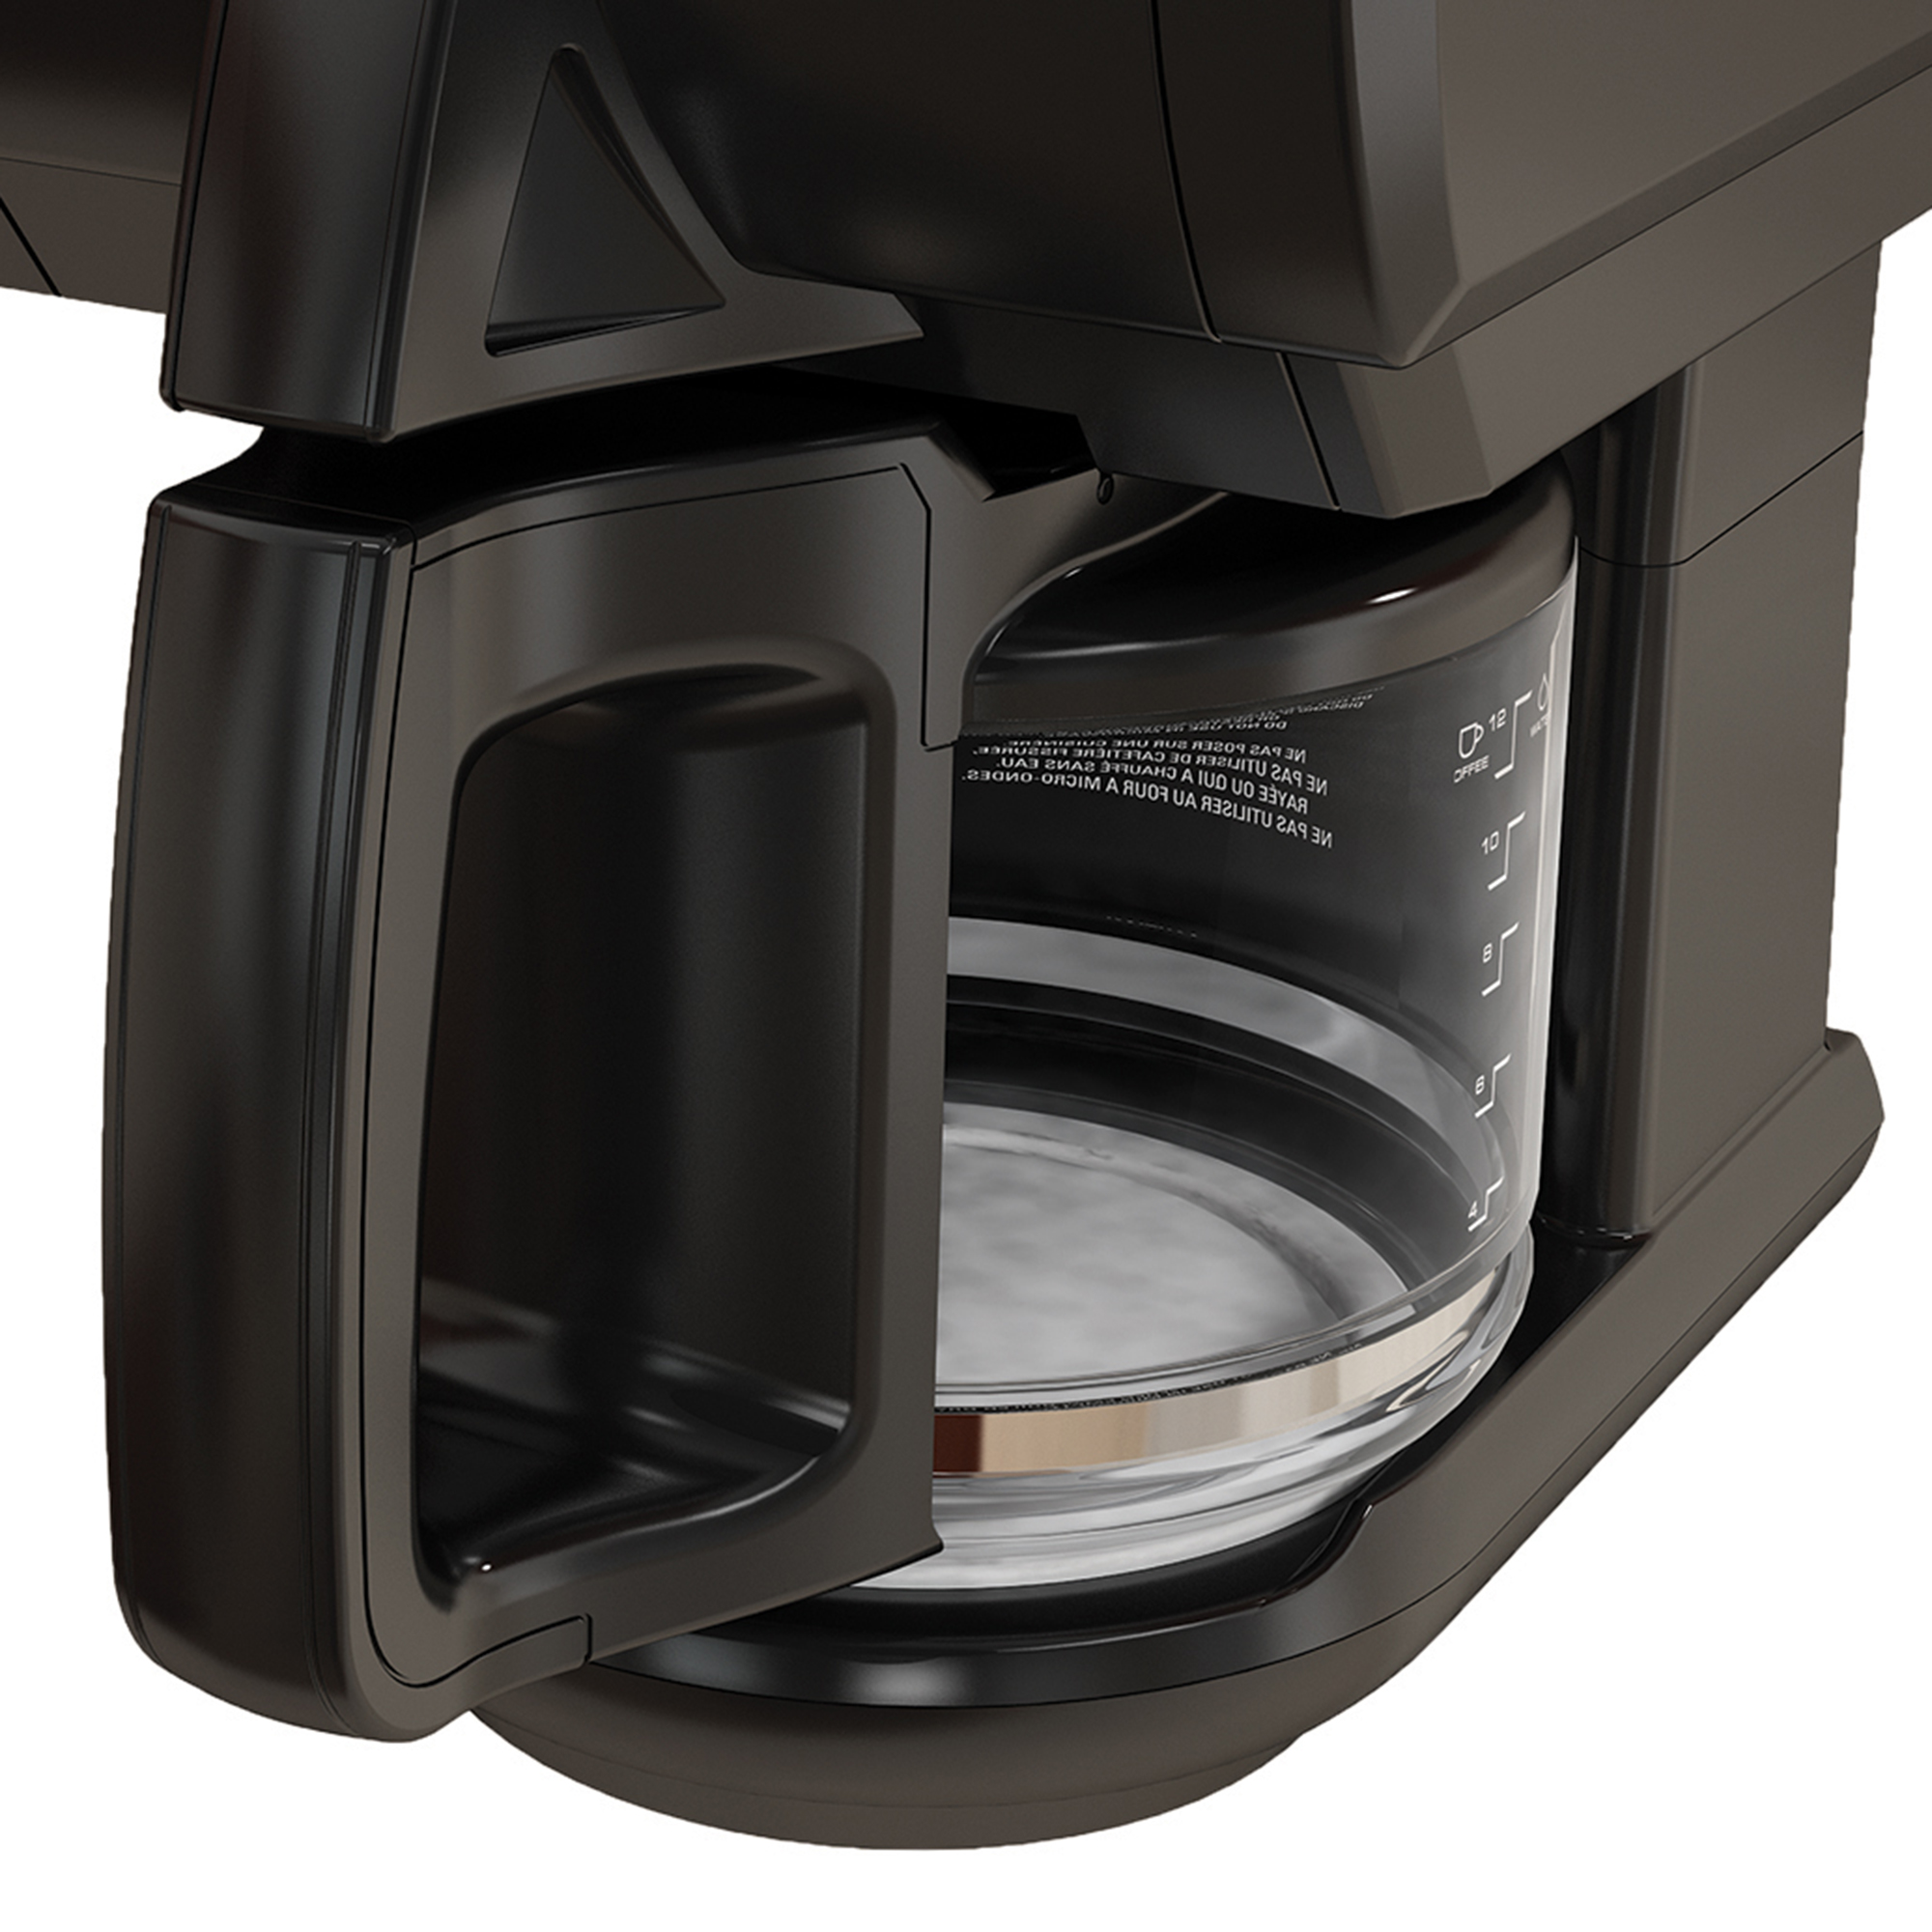 Ge Coffee Maker With Grinder : Black And Decker Spacemaker Coffee Maker Small Appliances Home Design Idea